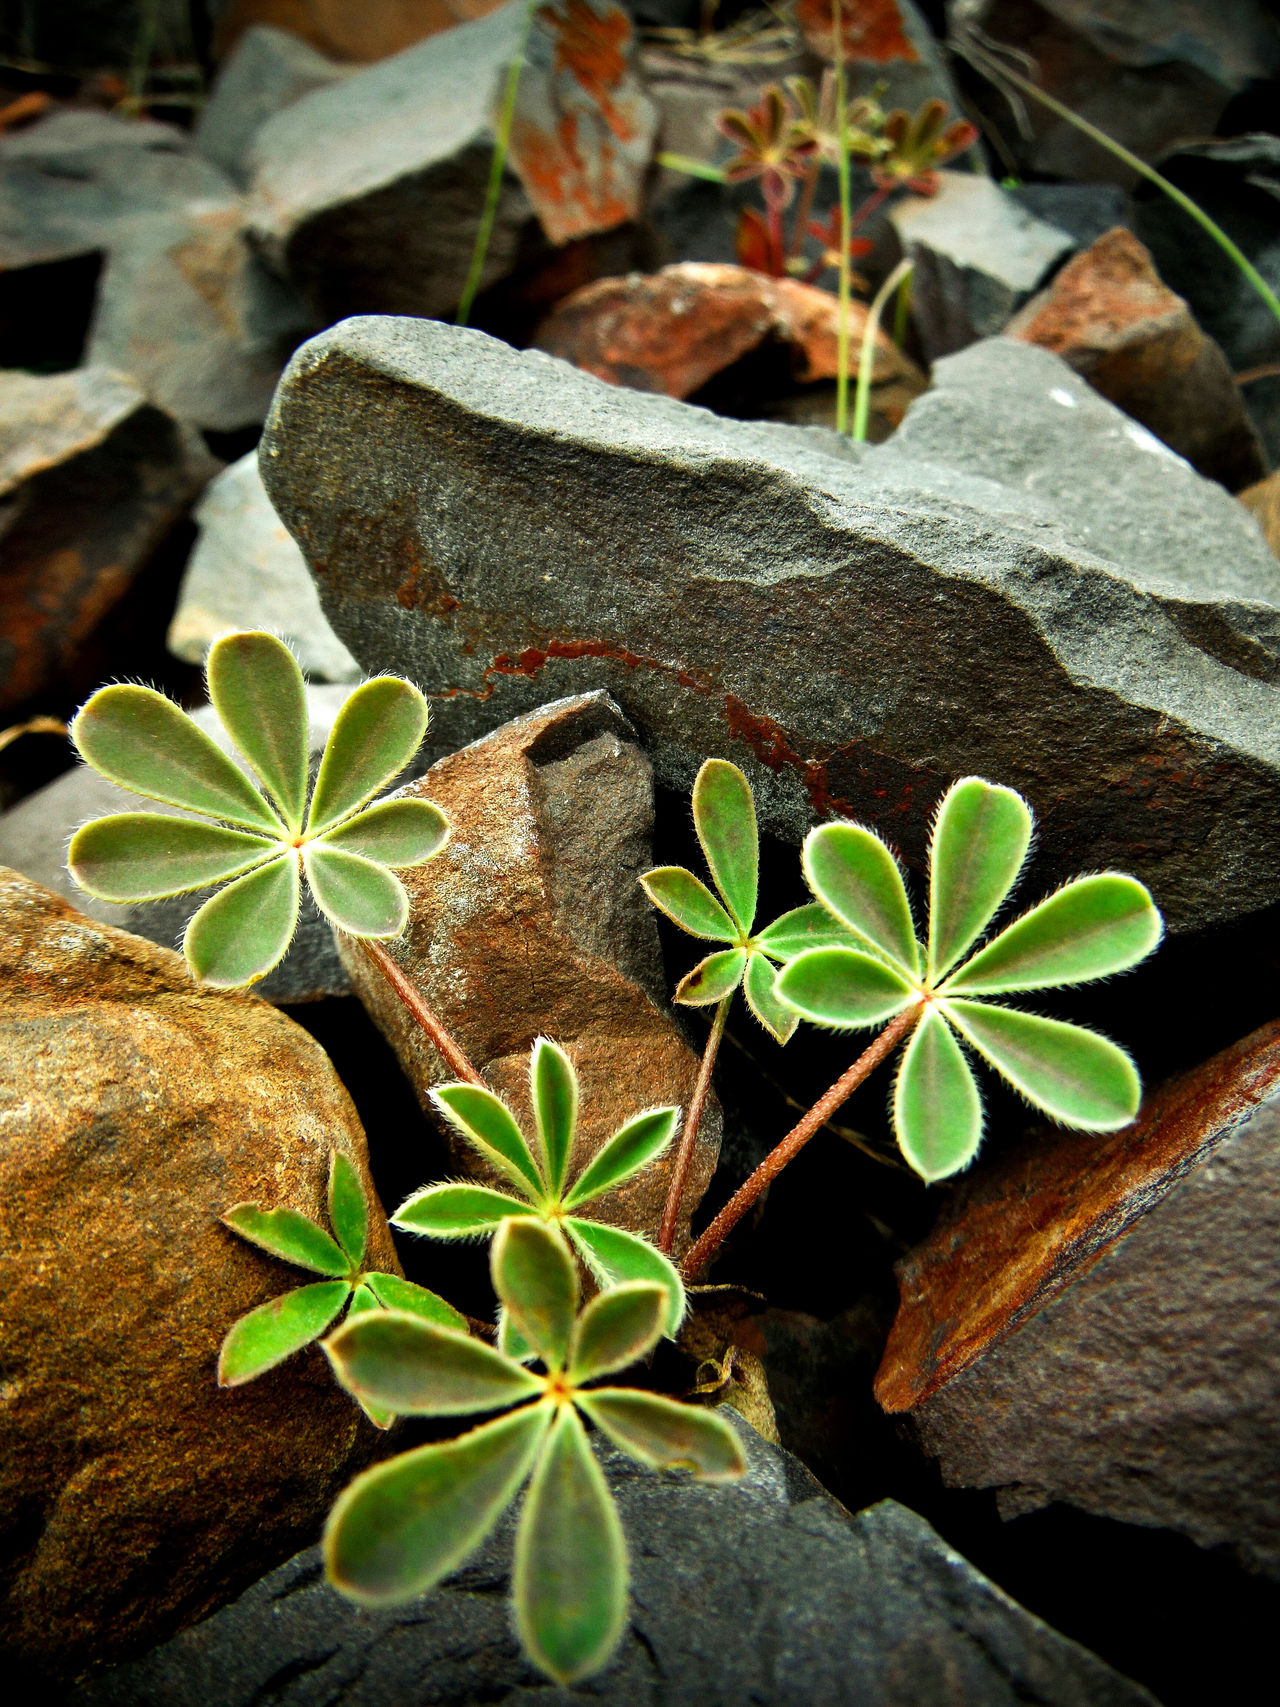 Leaf Plant Growth Nature Close-up Green Color Leaves Freshness Pretty Plant Little Plants Fuzzy Plant Green Color Green Plant Cute Plant Plant And Stone Rock And Plant Arrangement Growing Growing Plants Fragility Black Butte Black Butte California Beauty In Nature Decorative